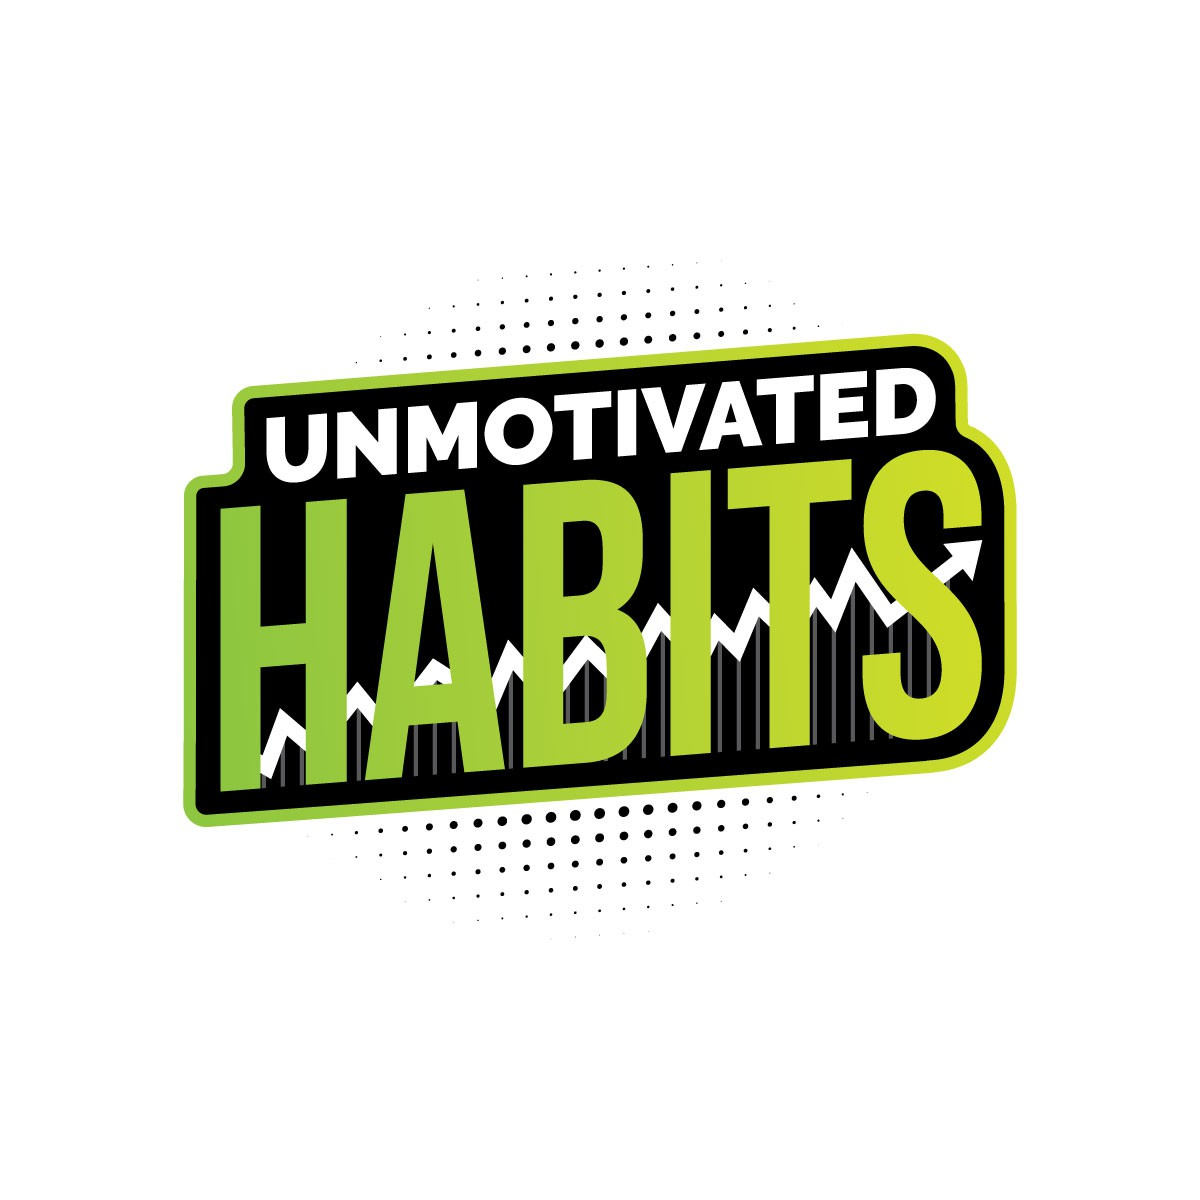 Unmotivated Habits - A blog & podcast about incremental improvement